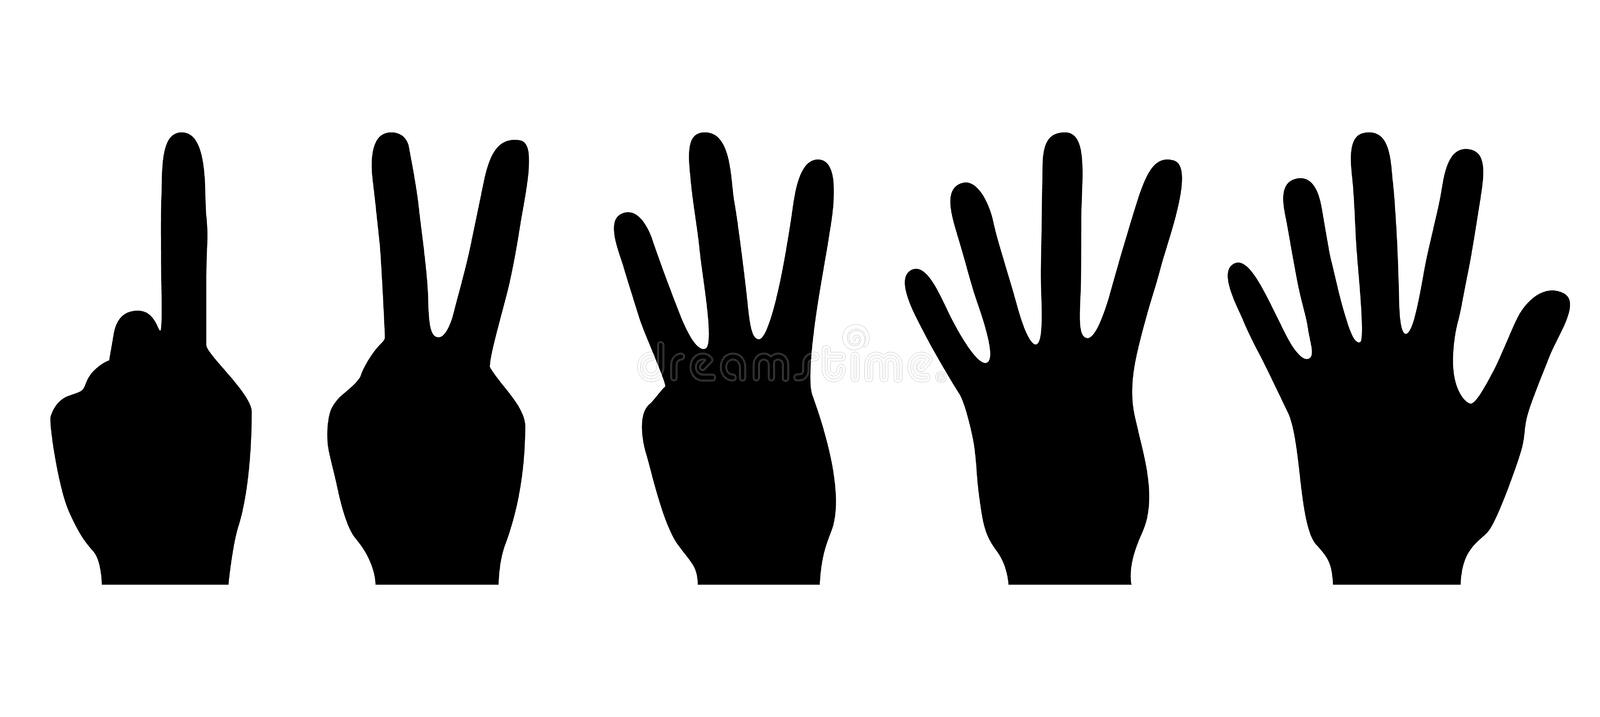 Silhouettes of counting hands, vector illustration stock illustration